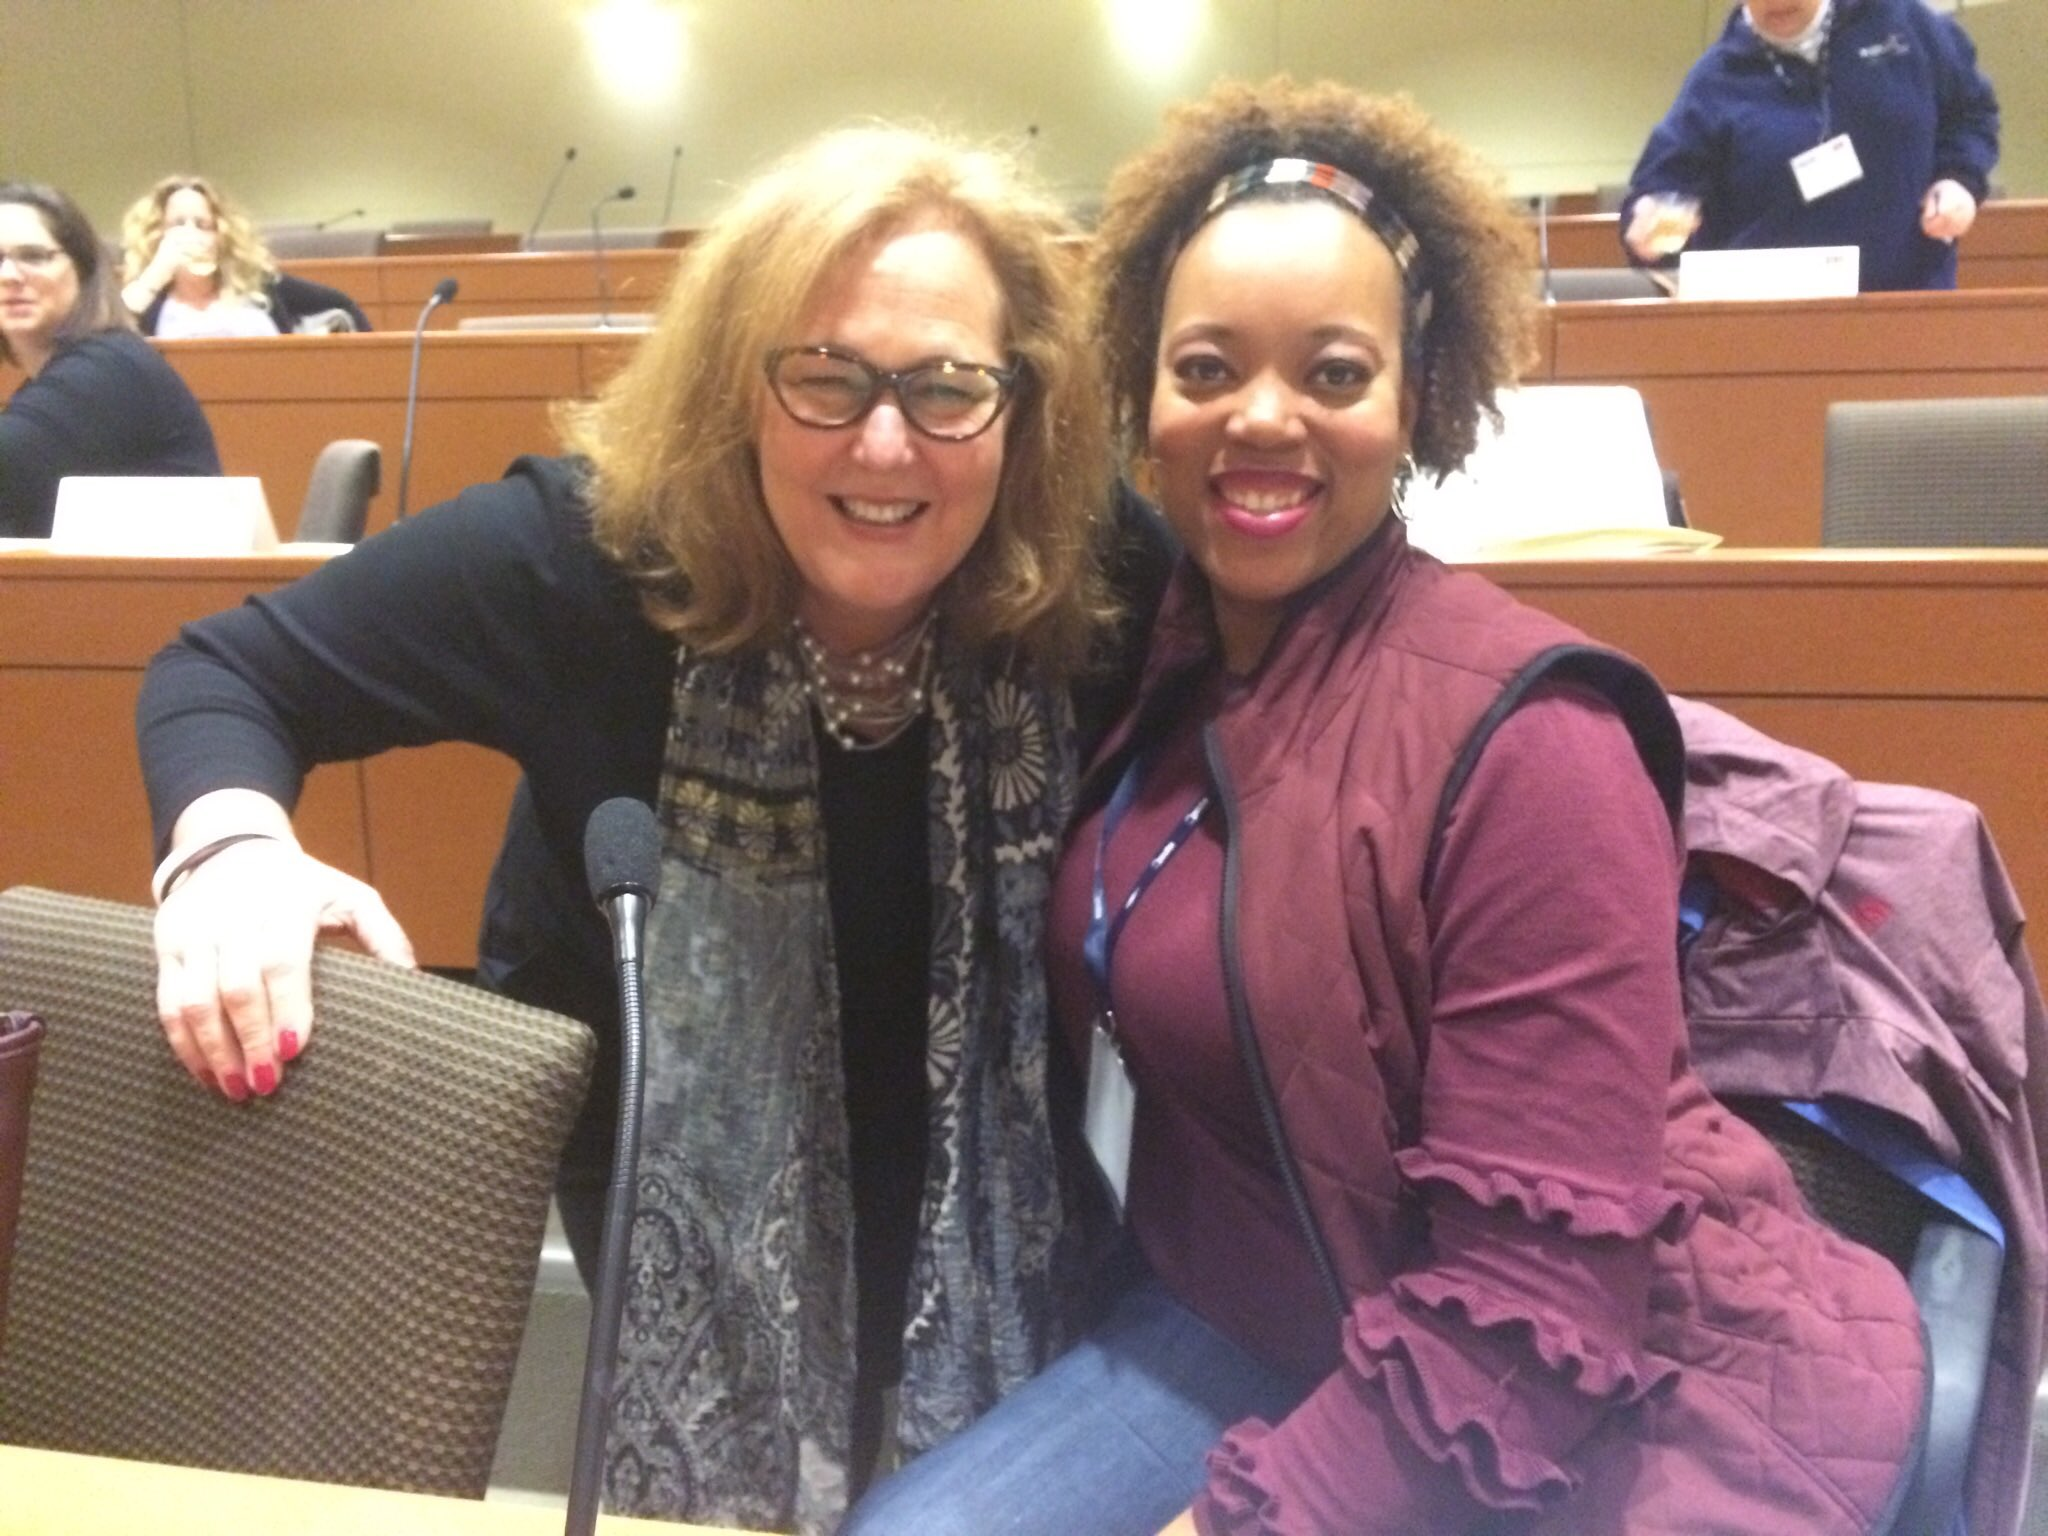 .@KarenMageeNYSUT with Aisha Cook of New Rochelle #nysutwomen https://t.co/UB4cPXZOfg